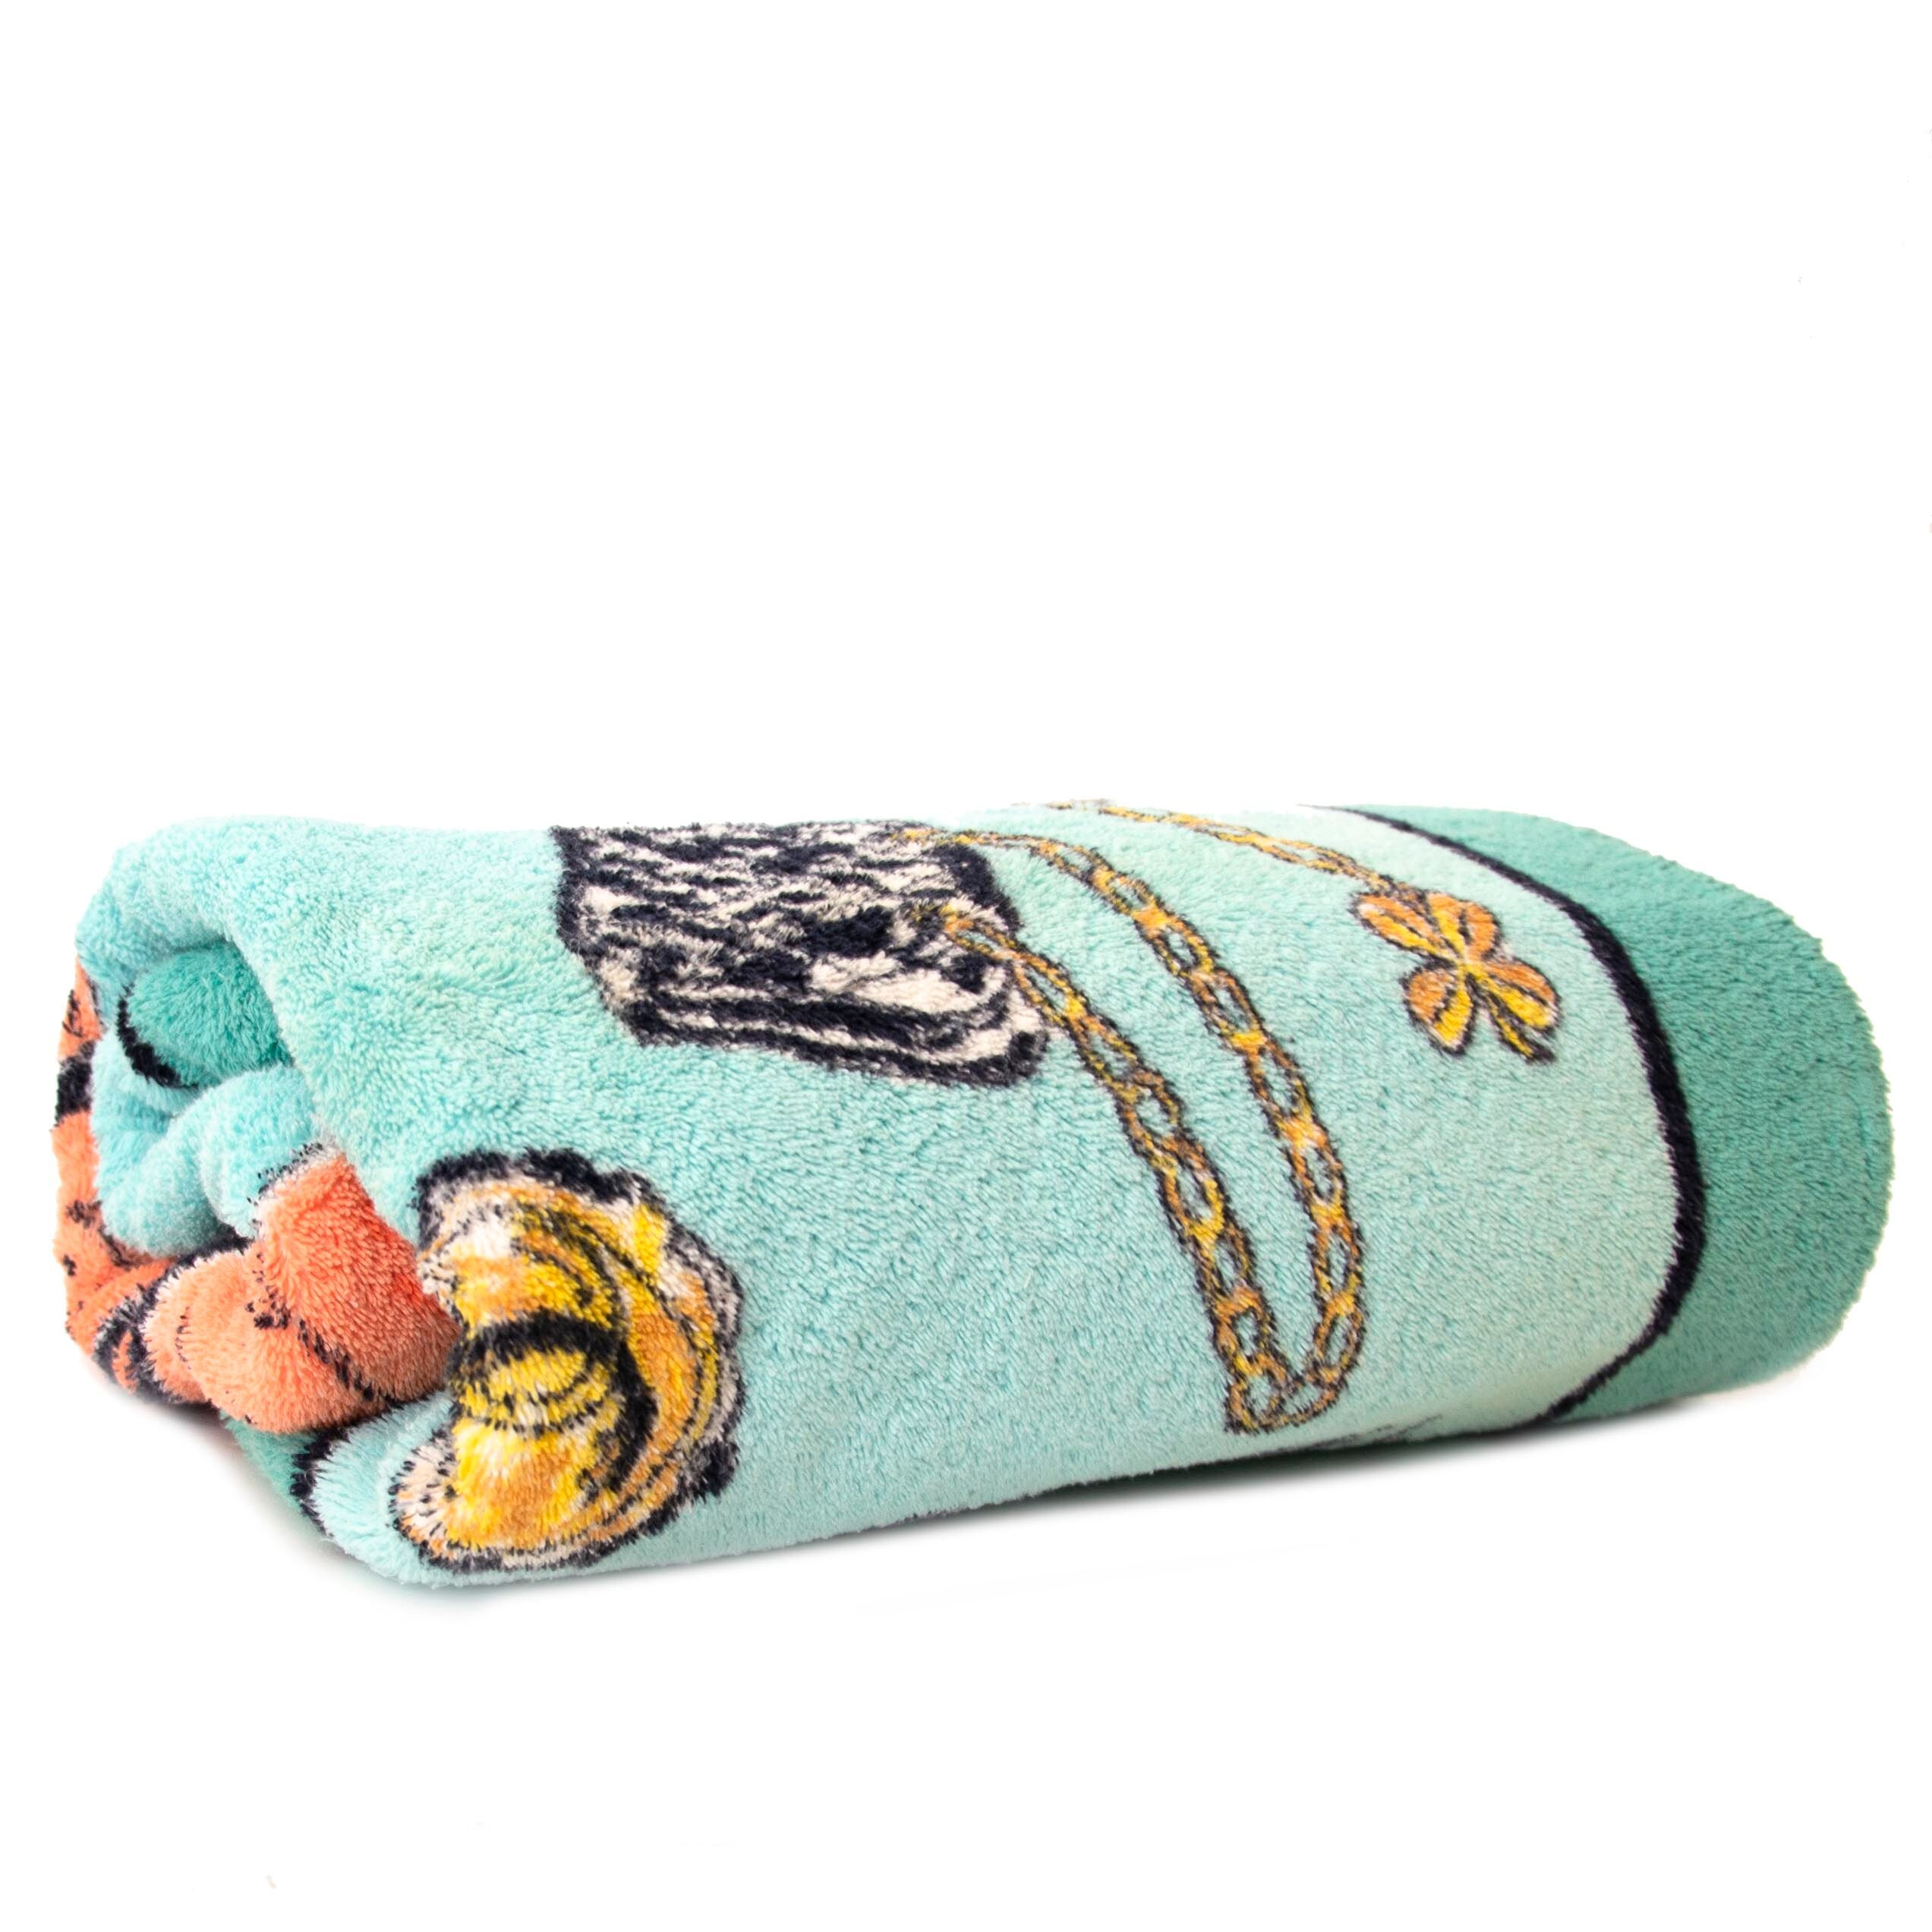 Buy authentic secondhand Chanel towel at Labellov vintage webshop for the lowest price.